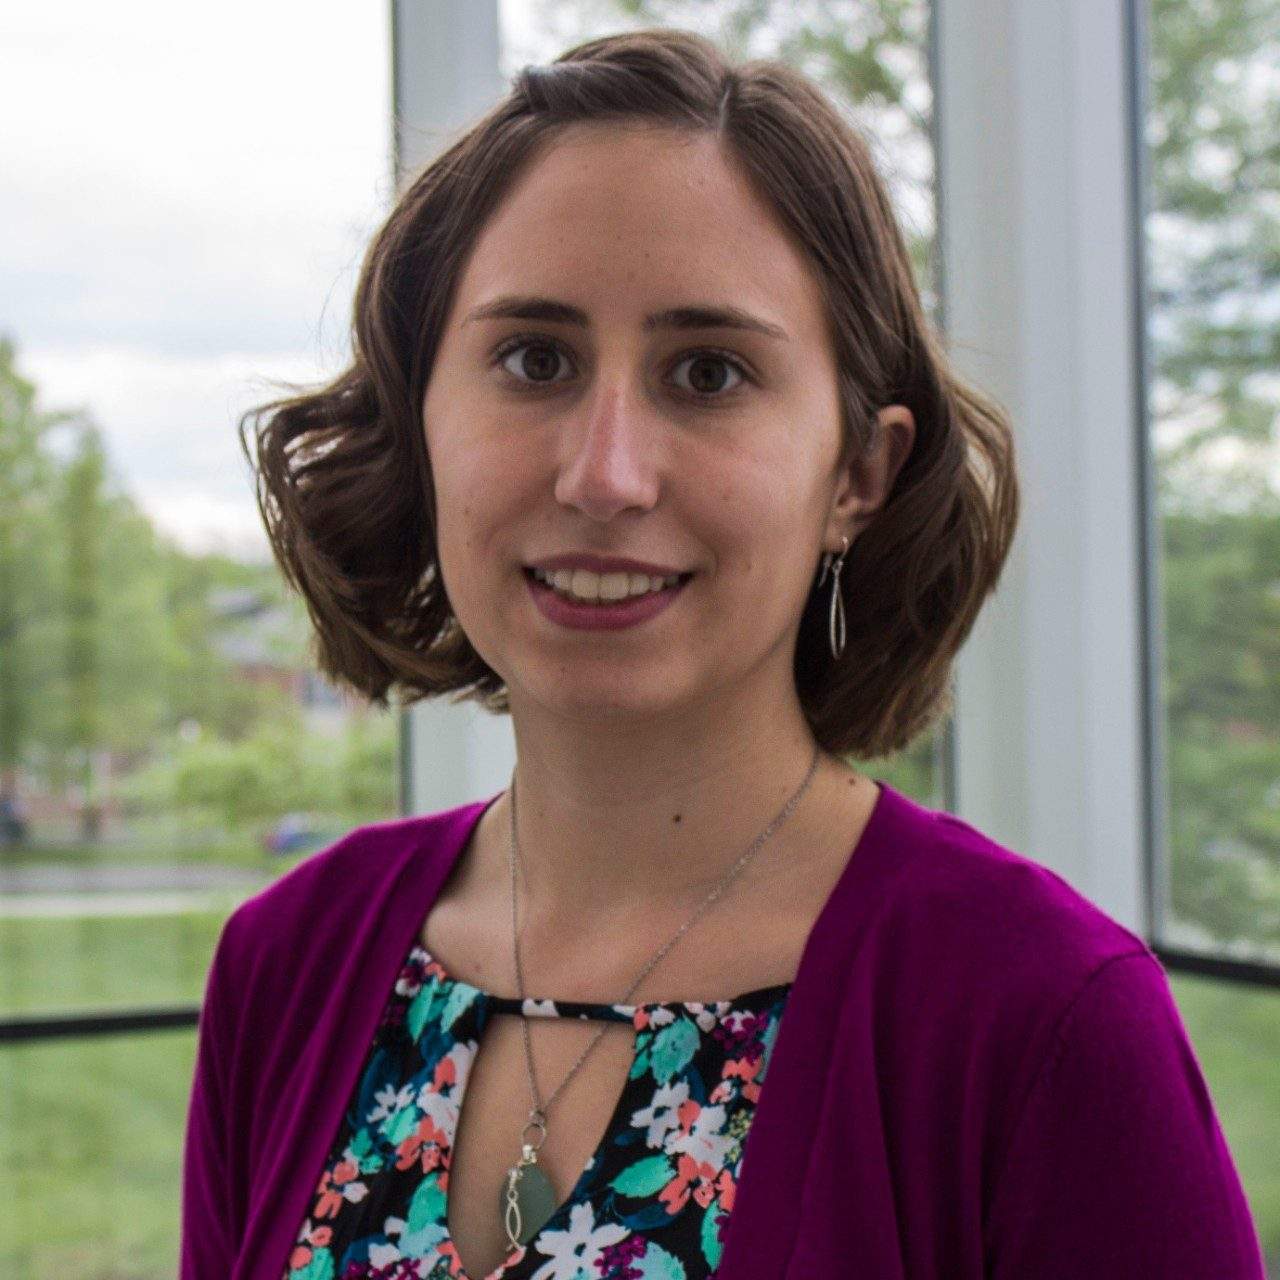 While pursuing majors in religion and culture and human development, Rachel completed internships at Northside Presbyterian Church and Blacksburg New School that allowed her to apply the classroom knowledge she had gained and explore future career options. She is now attending Columbia Theological Seminary in Georgia pursuing a Master of Divinity and a Master of Arts of Practical Theology with a specialization in pastoral care.  She plans to pursue a career in the Presbyterian Church USA.